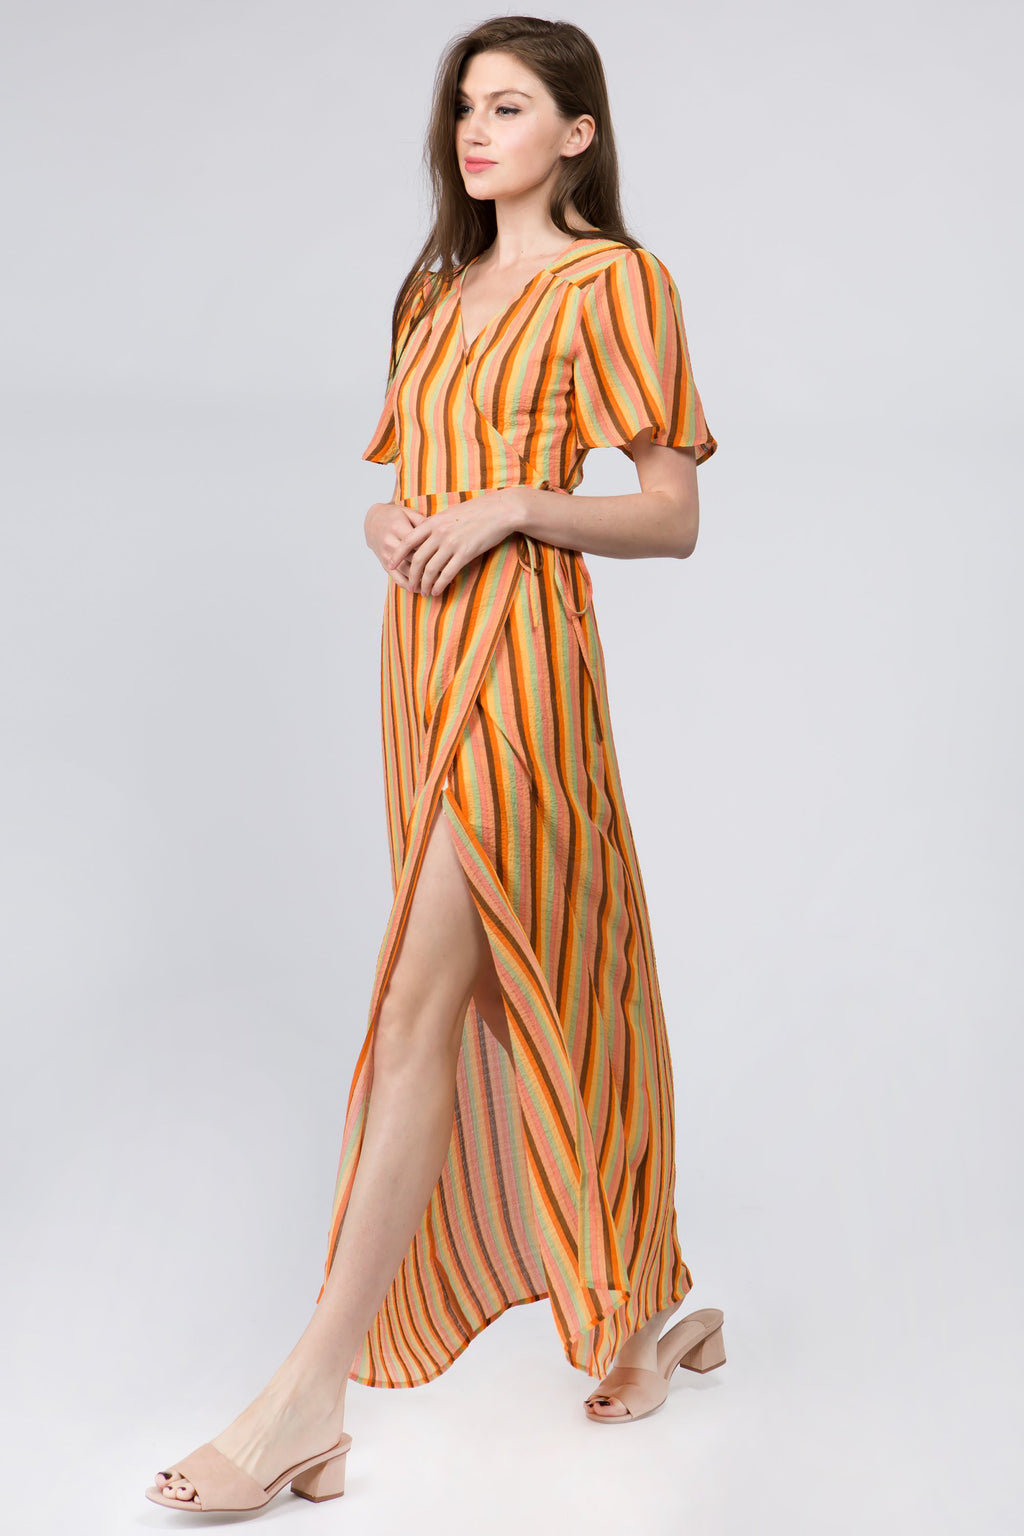 TANGERINE STRIPED DRESS